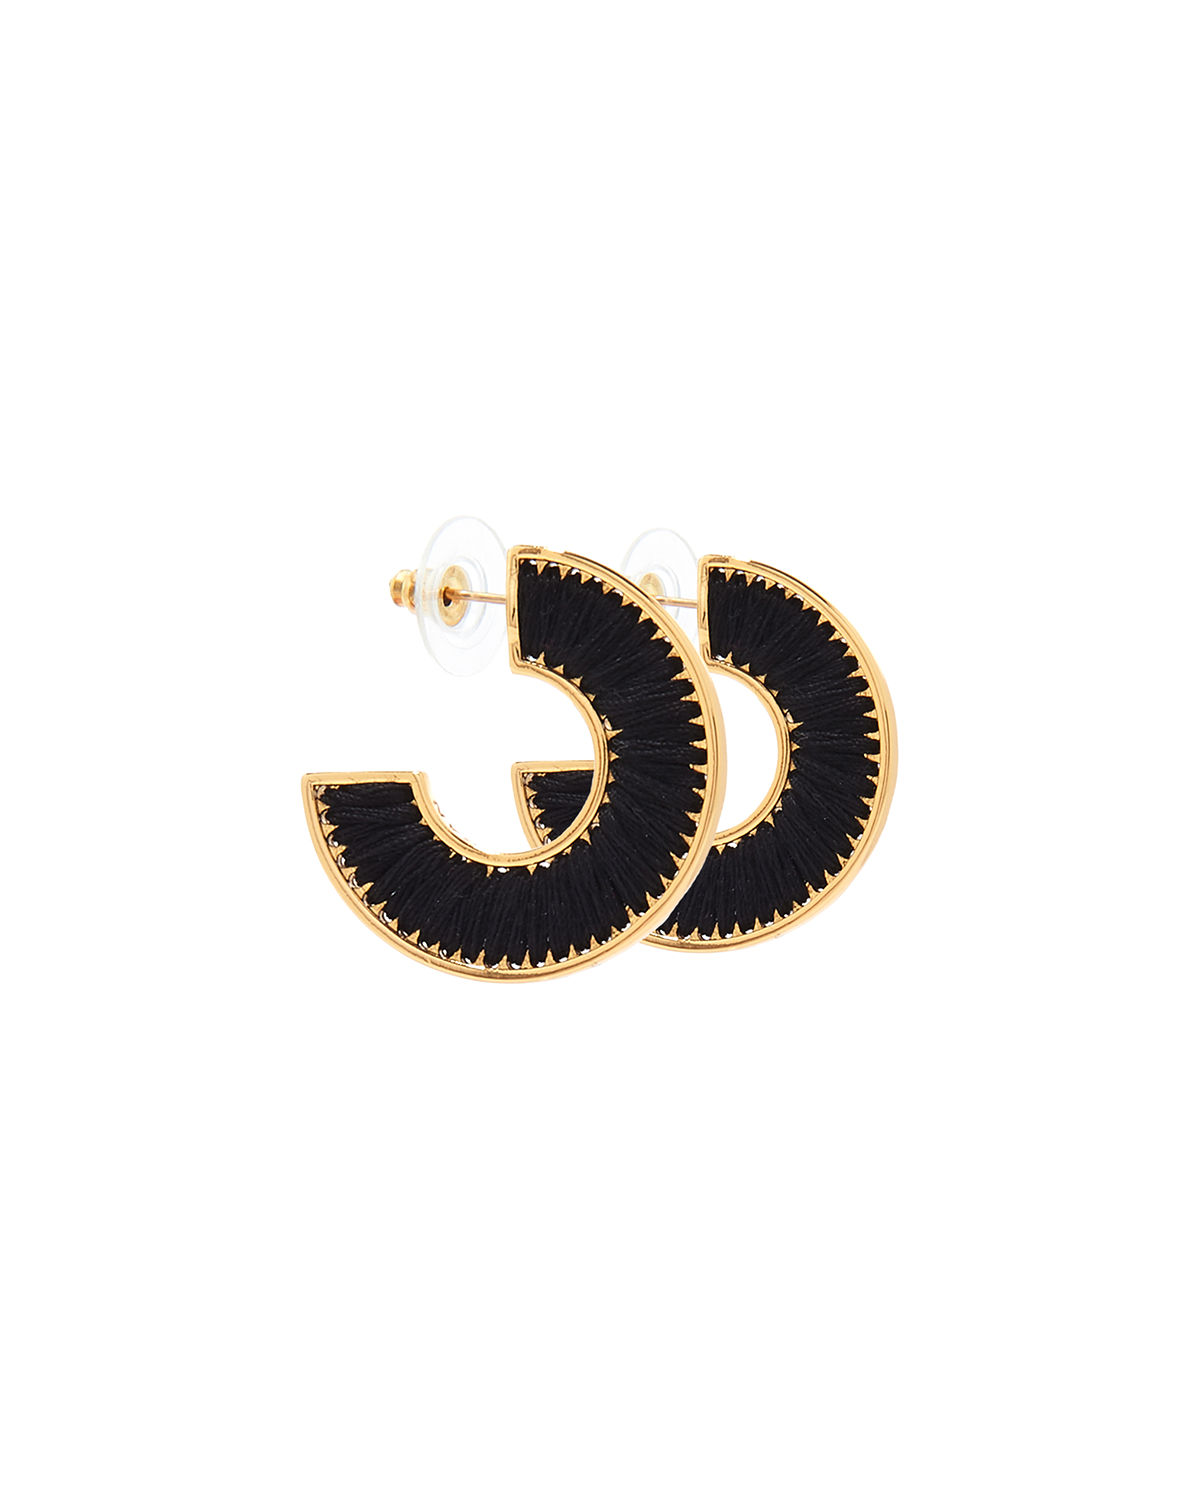 Mignonne Gavigan Accessories MINI FIONA HOOP EARRINGS